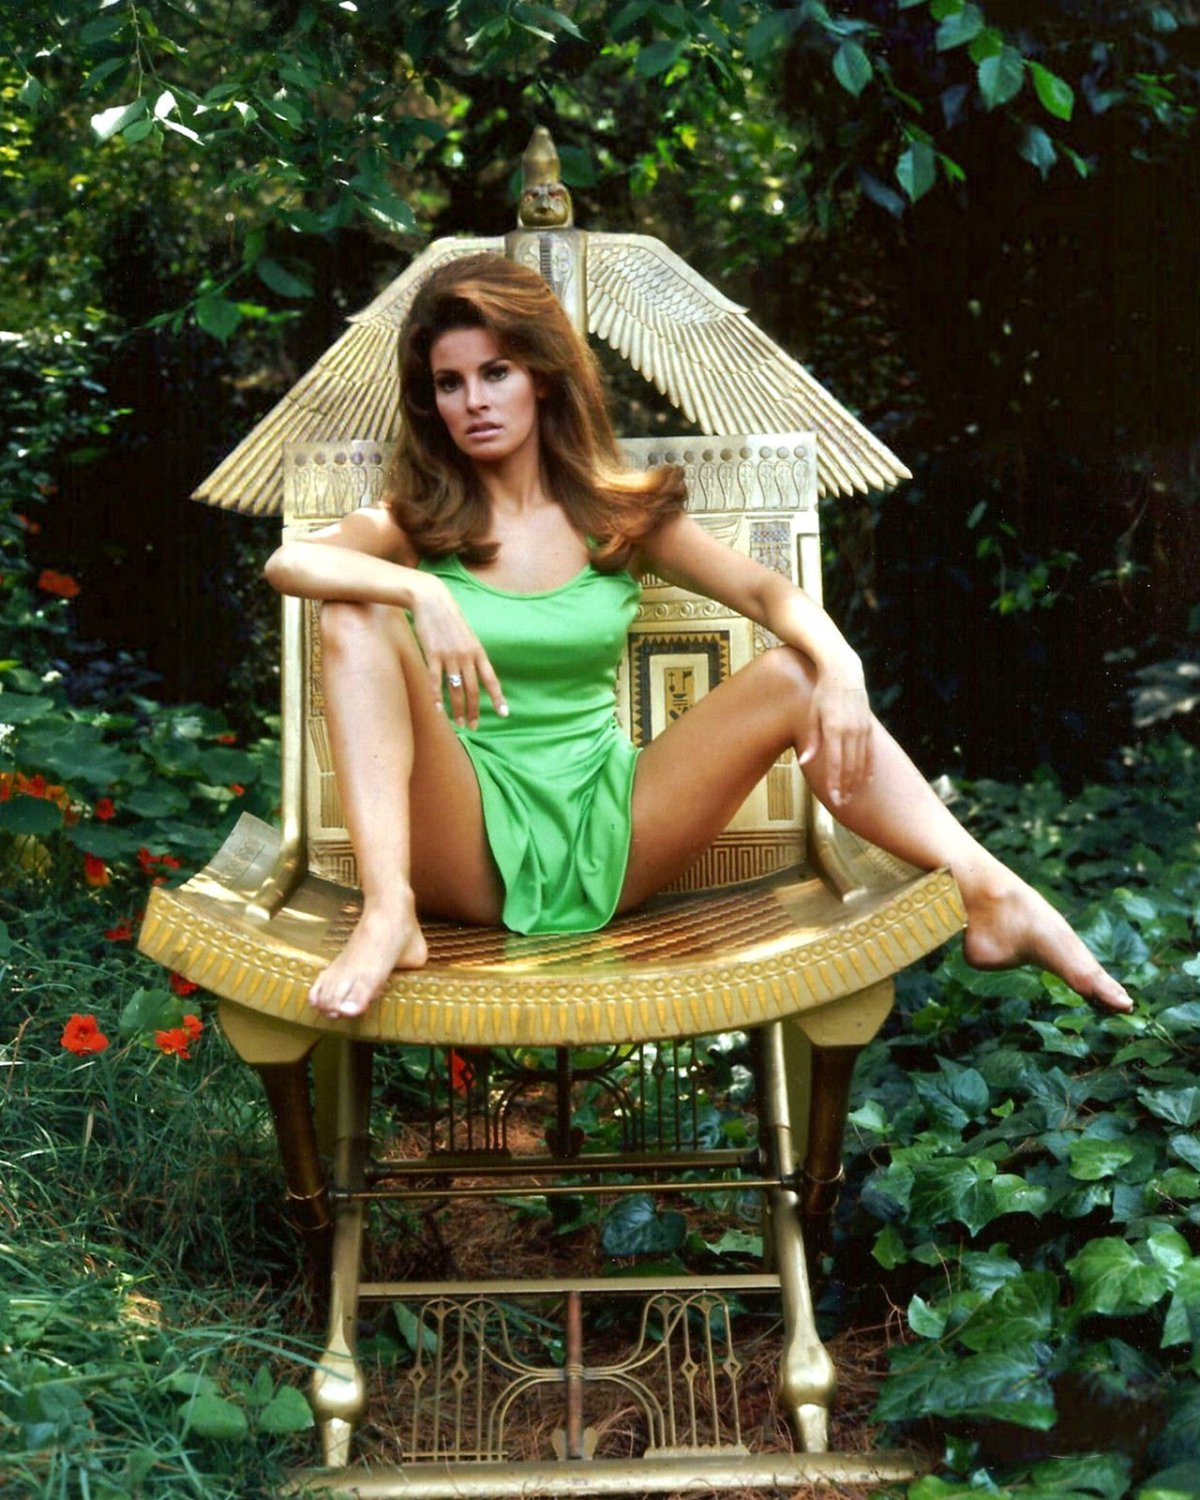 RAQUEL WELCH ACTRESS AND SEX-SYMBOL - 8X10 PUBLICITY PHOTO (SP-029)